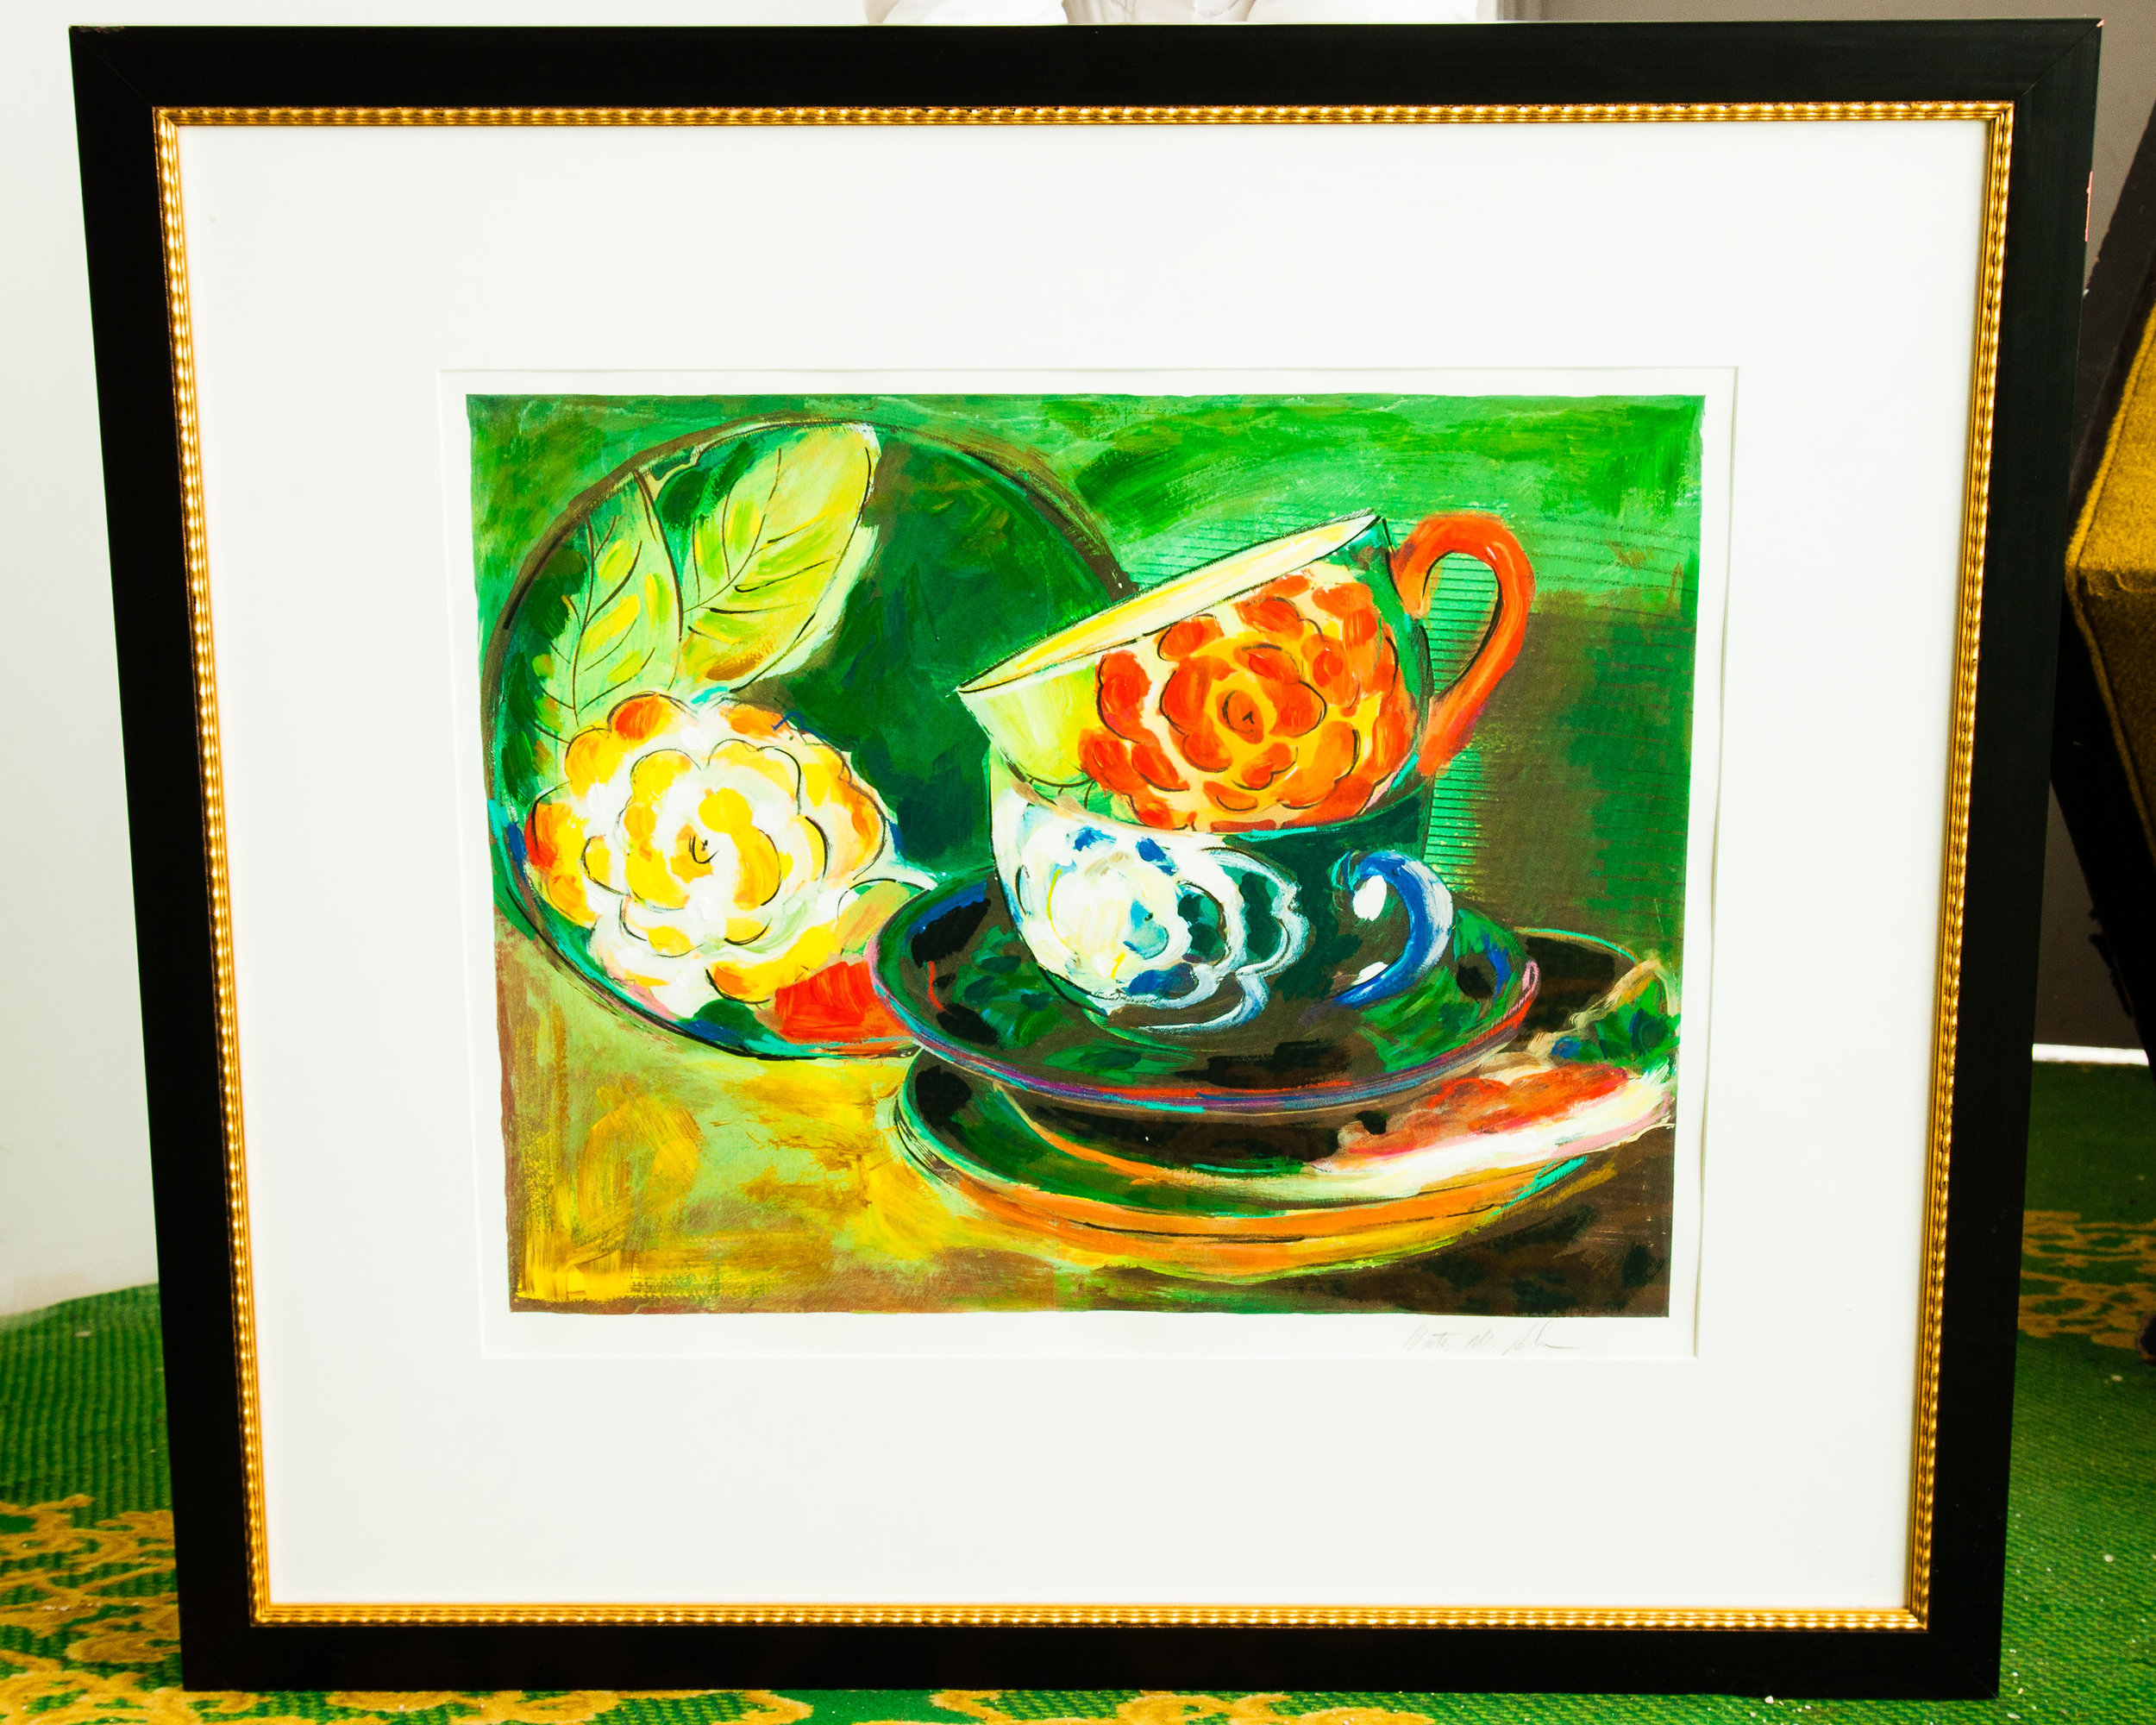 Retro Knox offers beautiful wall art pieces like this 1970's Large Oil Painting.